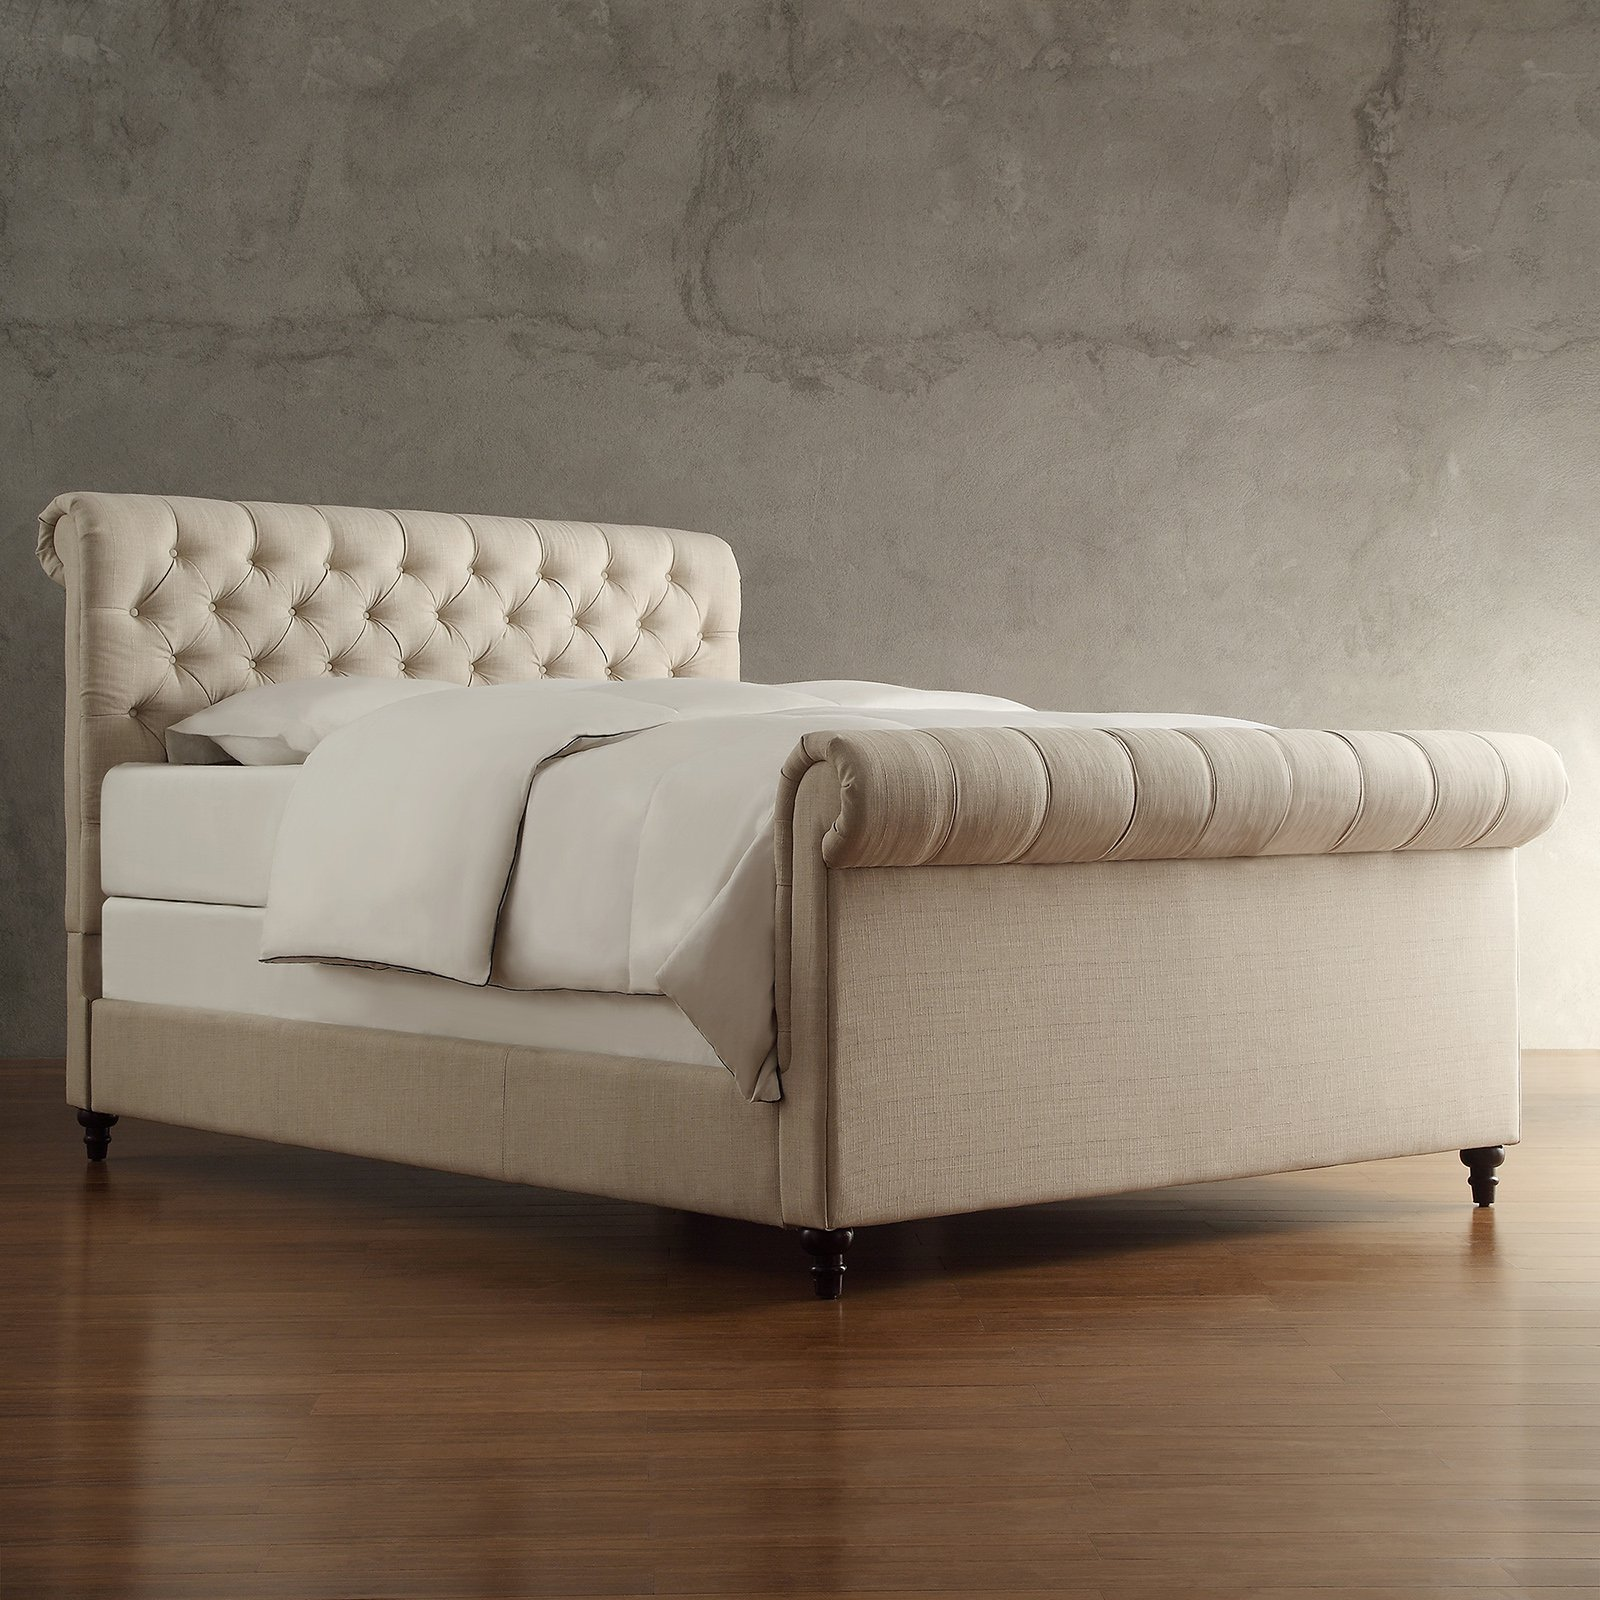 - Weston Home Ellesmere Tufted Upholstered Sleigh Bed - Walmart.com